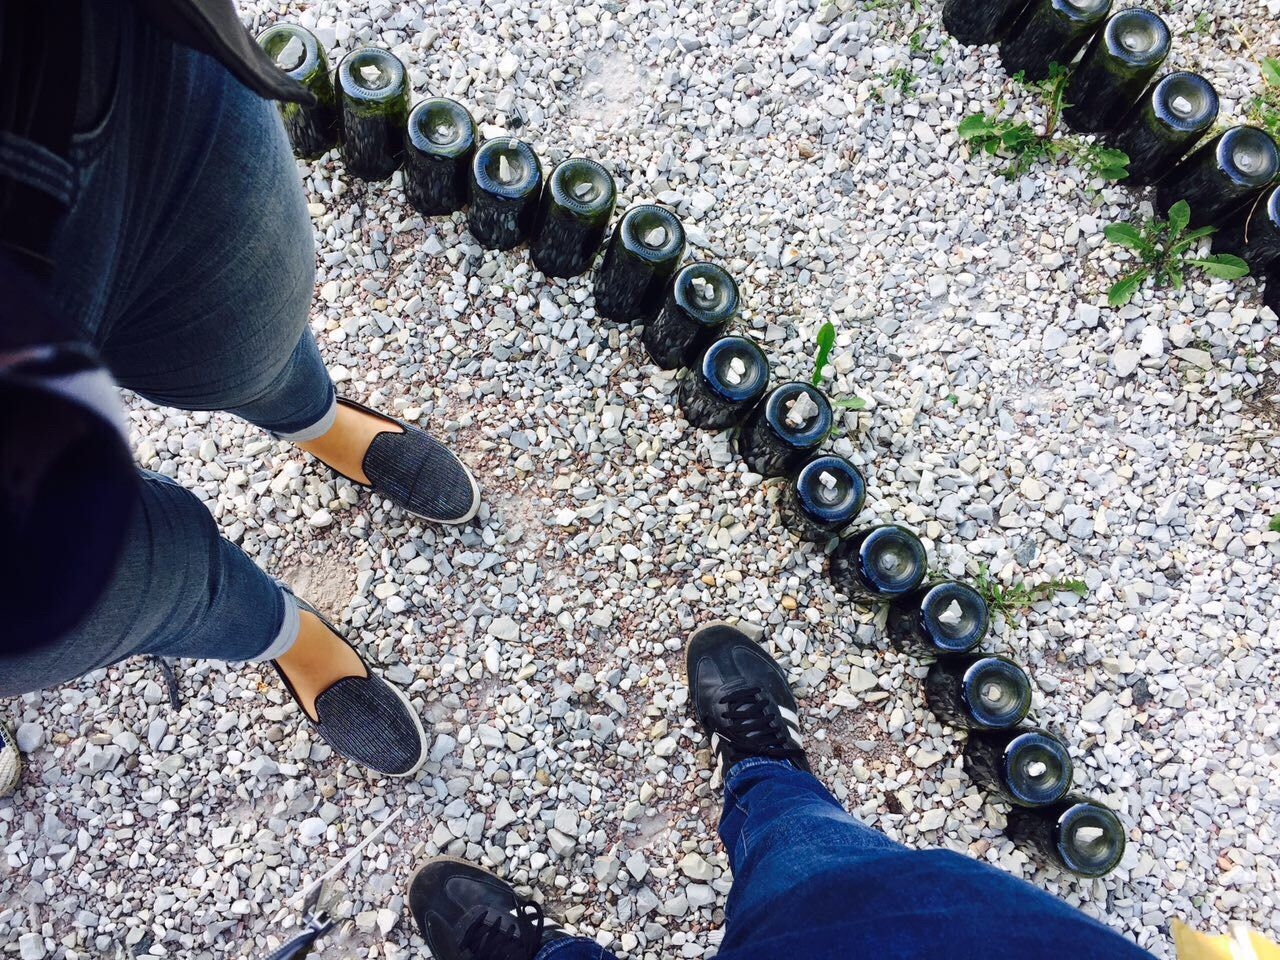 Shoe Human Body Part Human Leg Low Section High Angle View Standing Outdoors Real People Men Day One Person People Legs Adult Human Hand Adults Only Outdoor Bottles Collection Out Of The Box